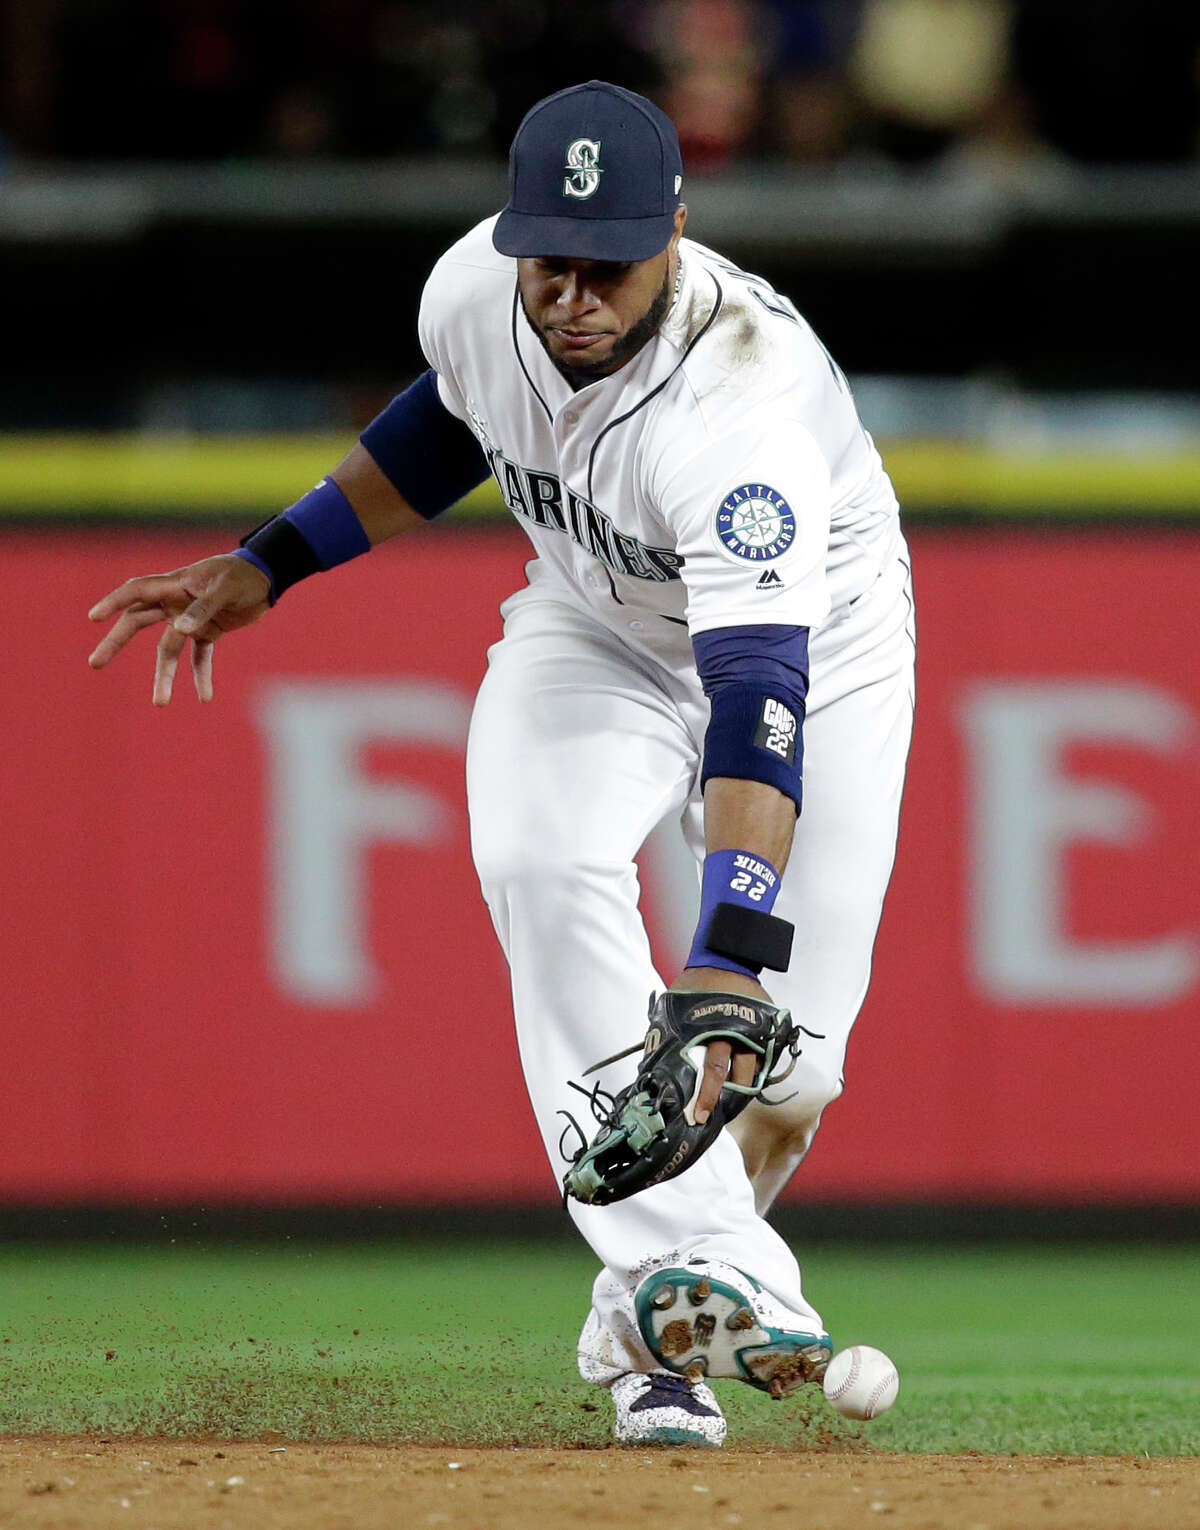 Seattle Mariners second baseman Robinson Cano misplays a grounder from Kansas City Royals' Lorenzo Cain for an error during the 10th inning of a baseball game Wednesday, July 5, 2017, in Seattle. (AP Photo/Elaine Thompson)